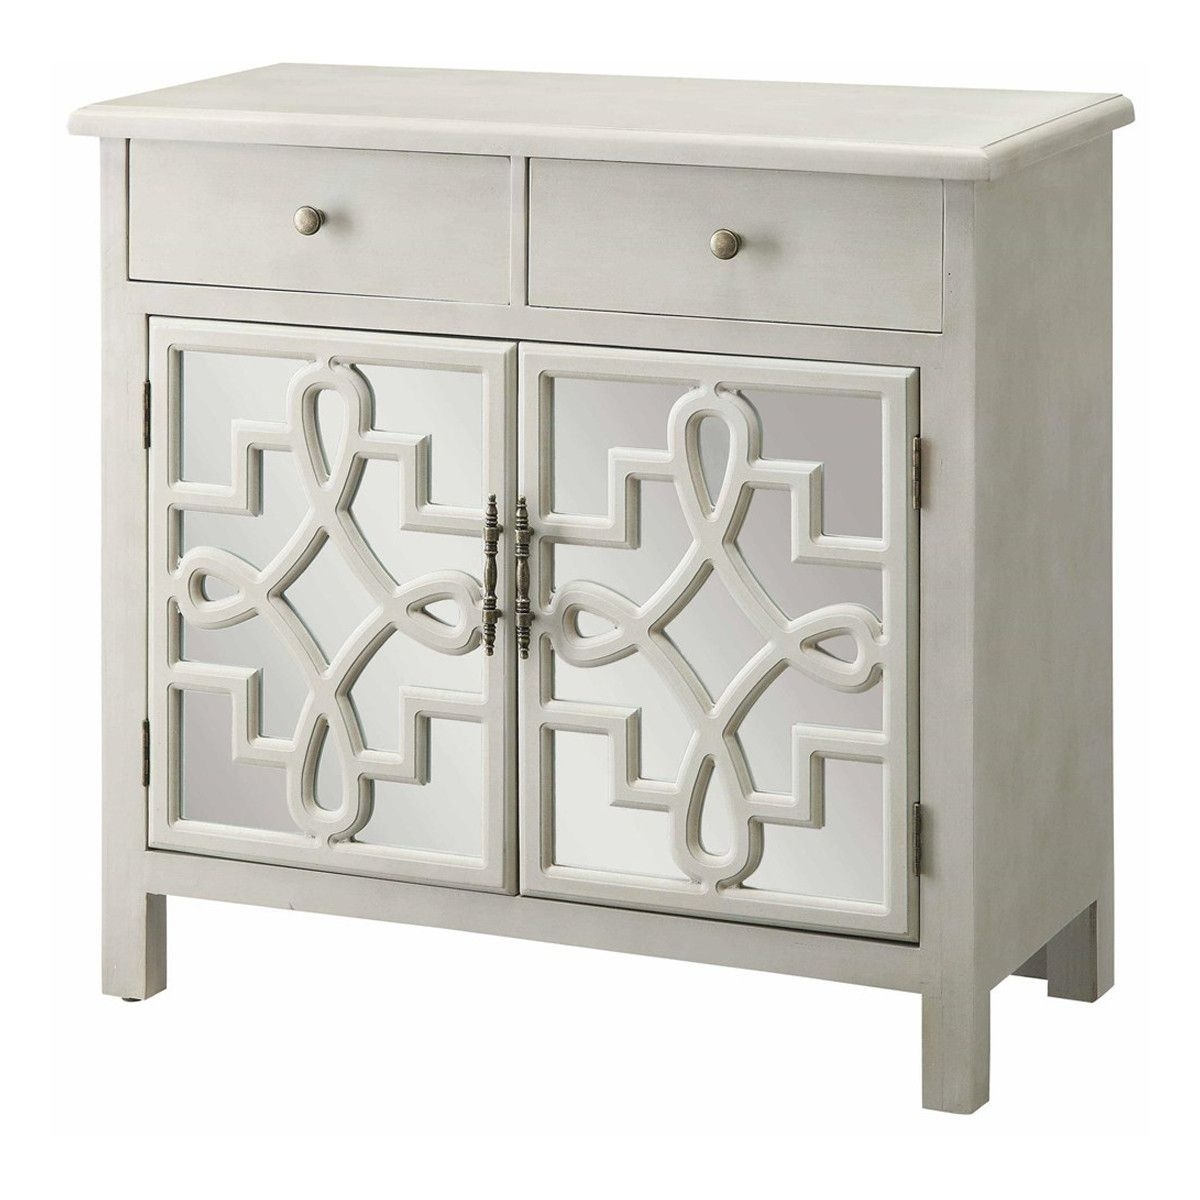 Coventry 2 Door Antique White And Mirrored Cabinet | Home inside Aged Mirrored 2 Door Sideboards (Image 11 of 30)